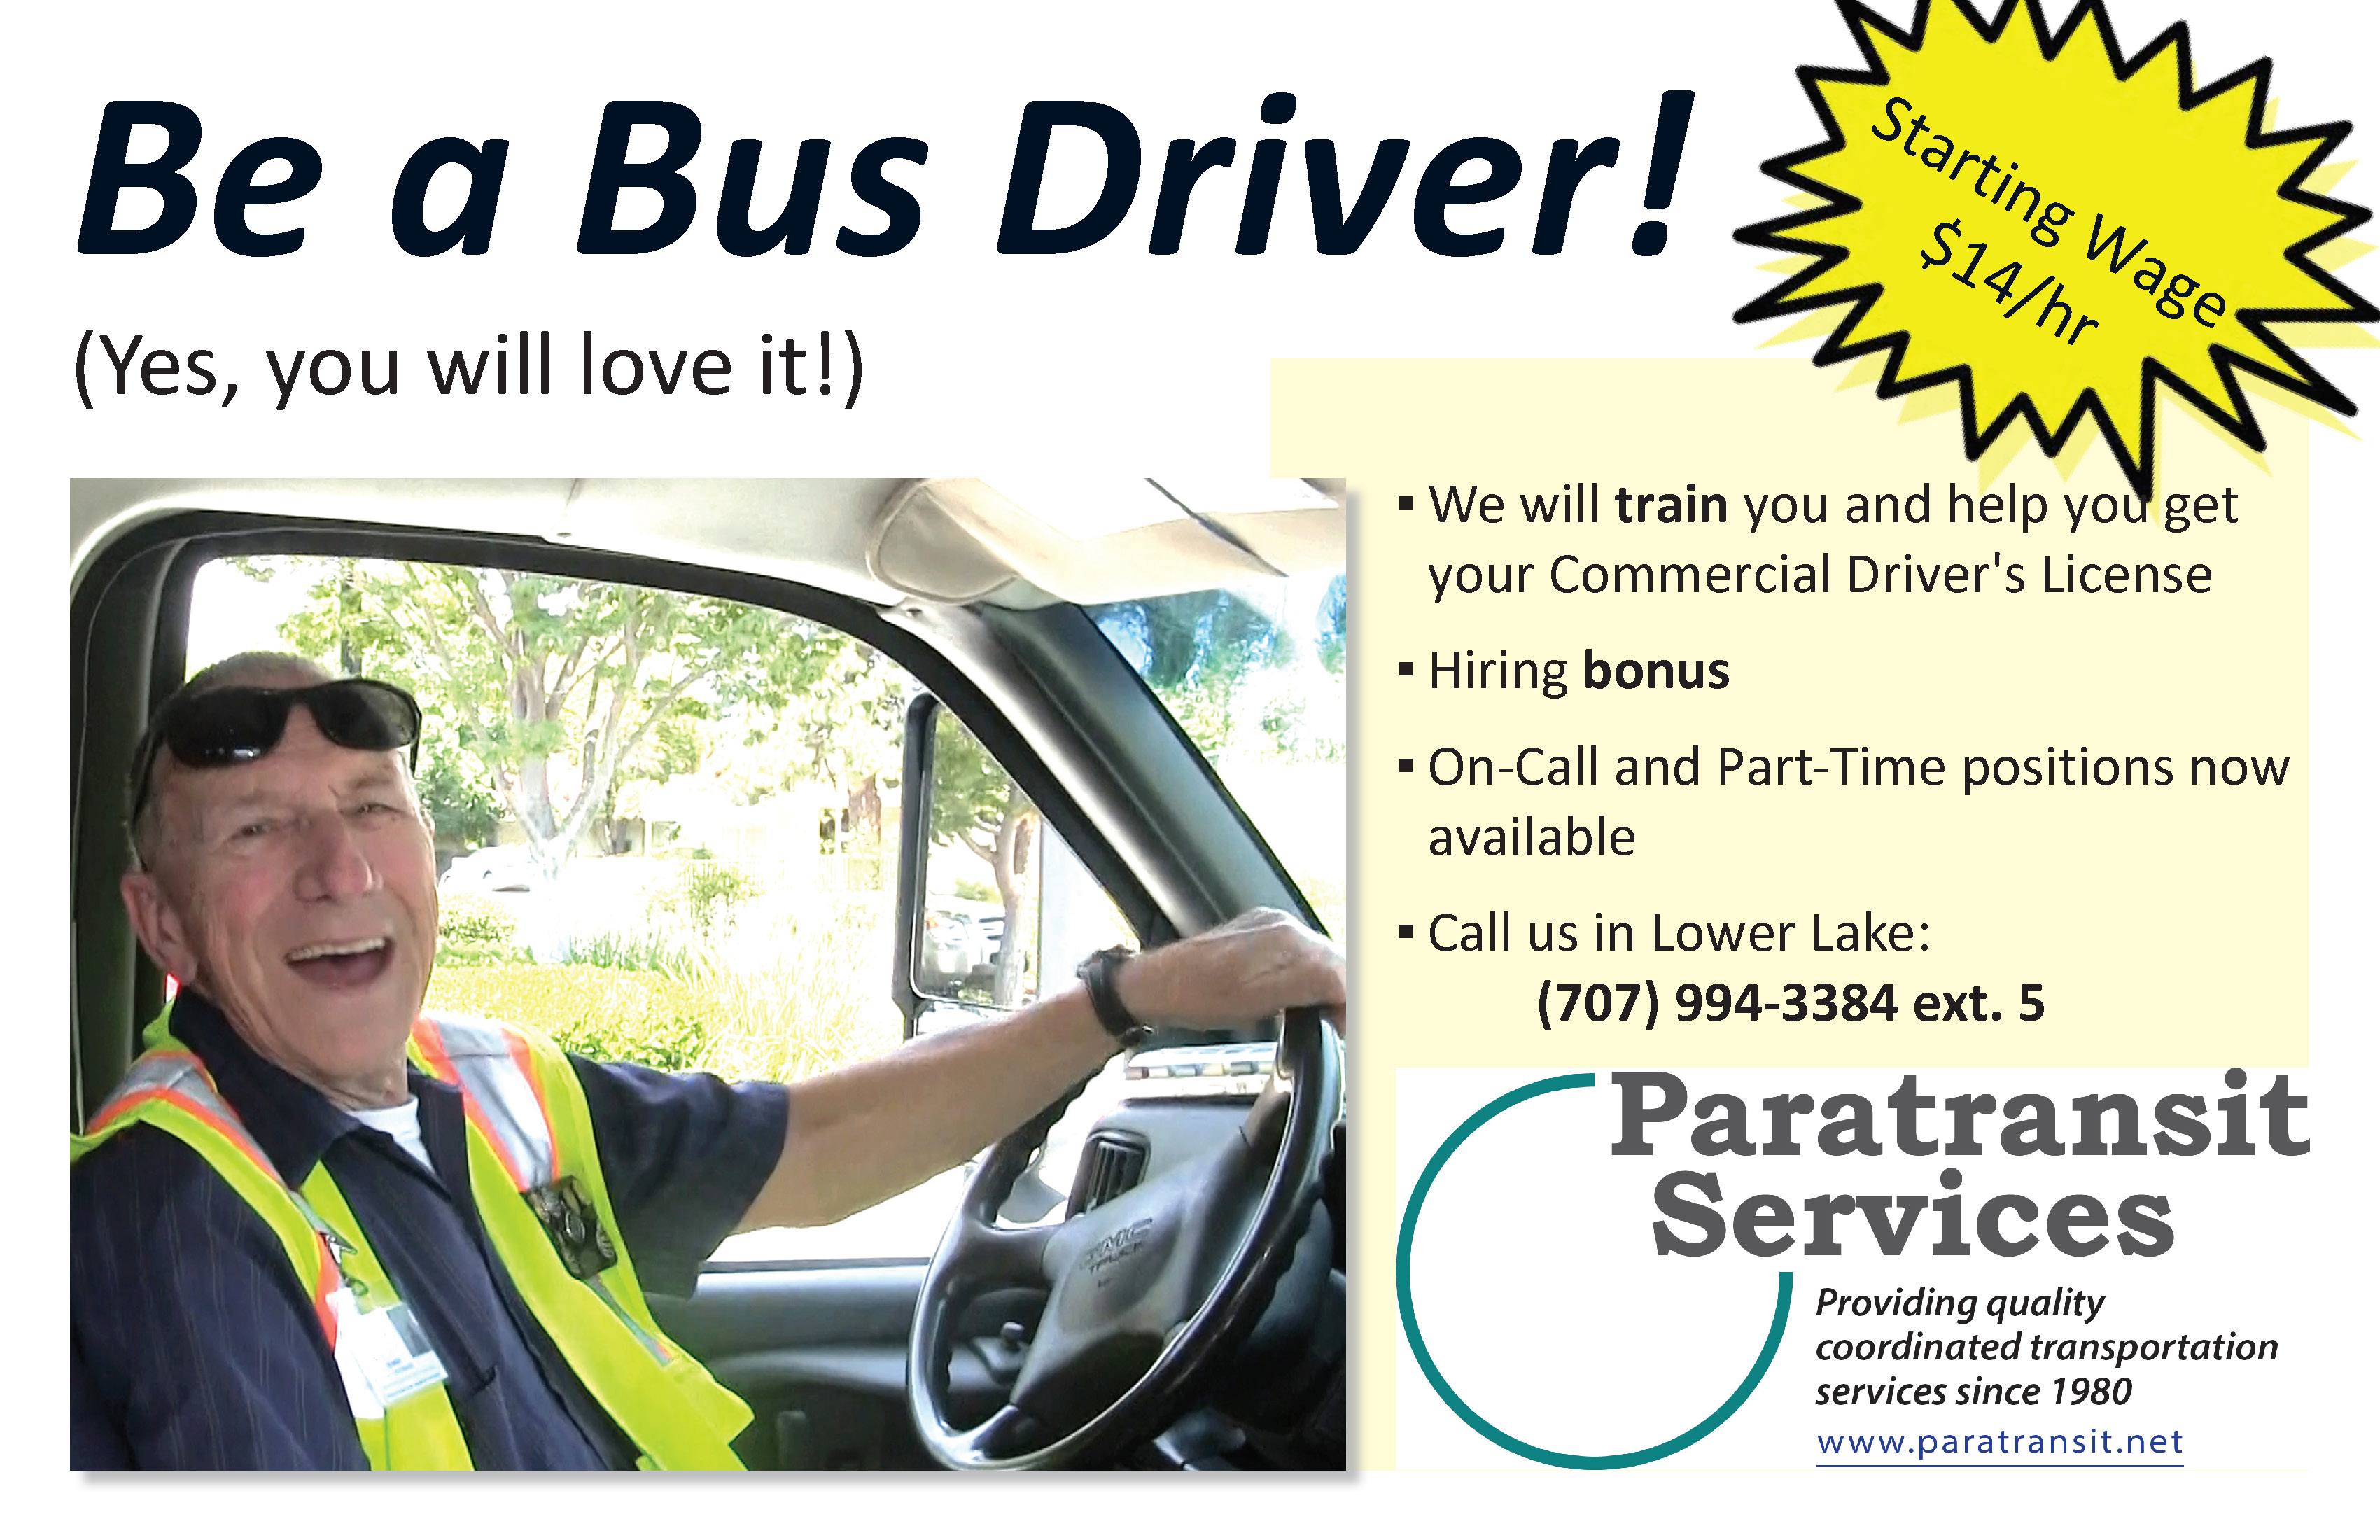 Ad for current open driver positions for LTA